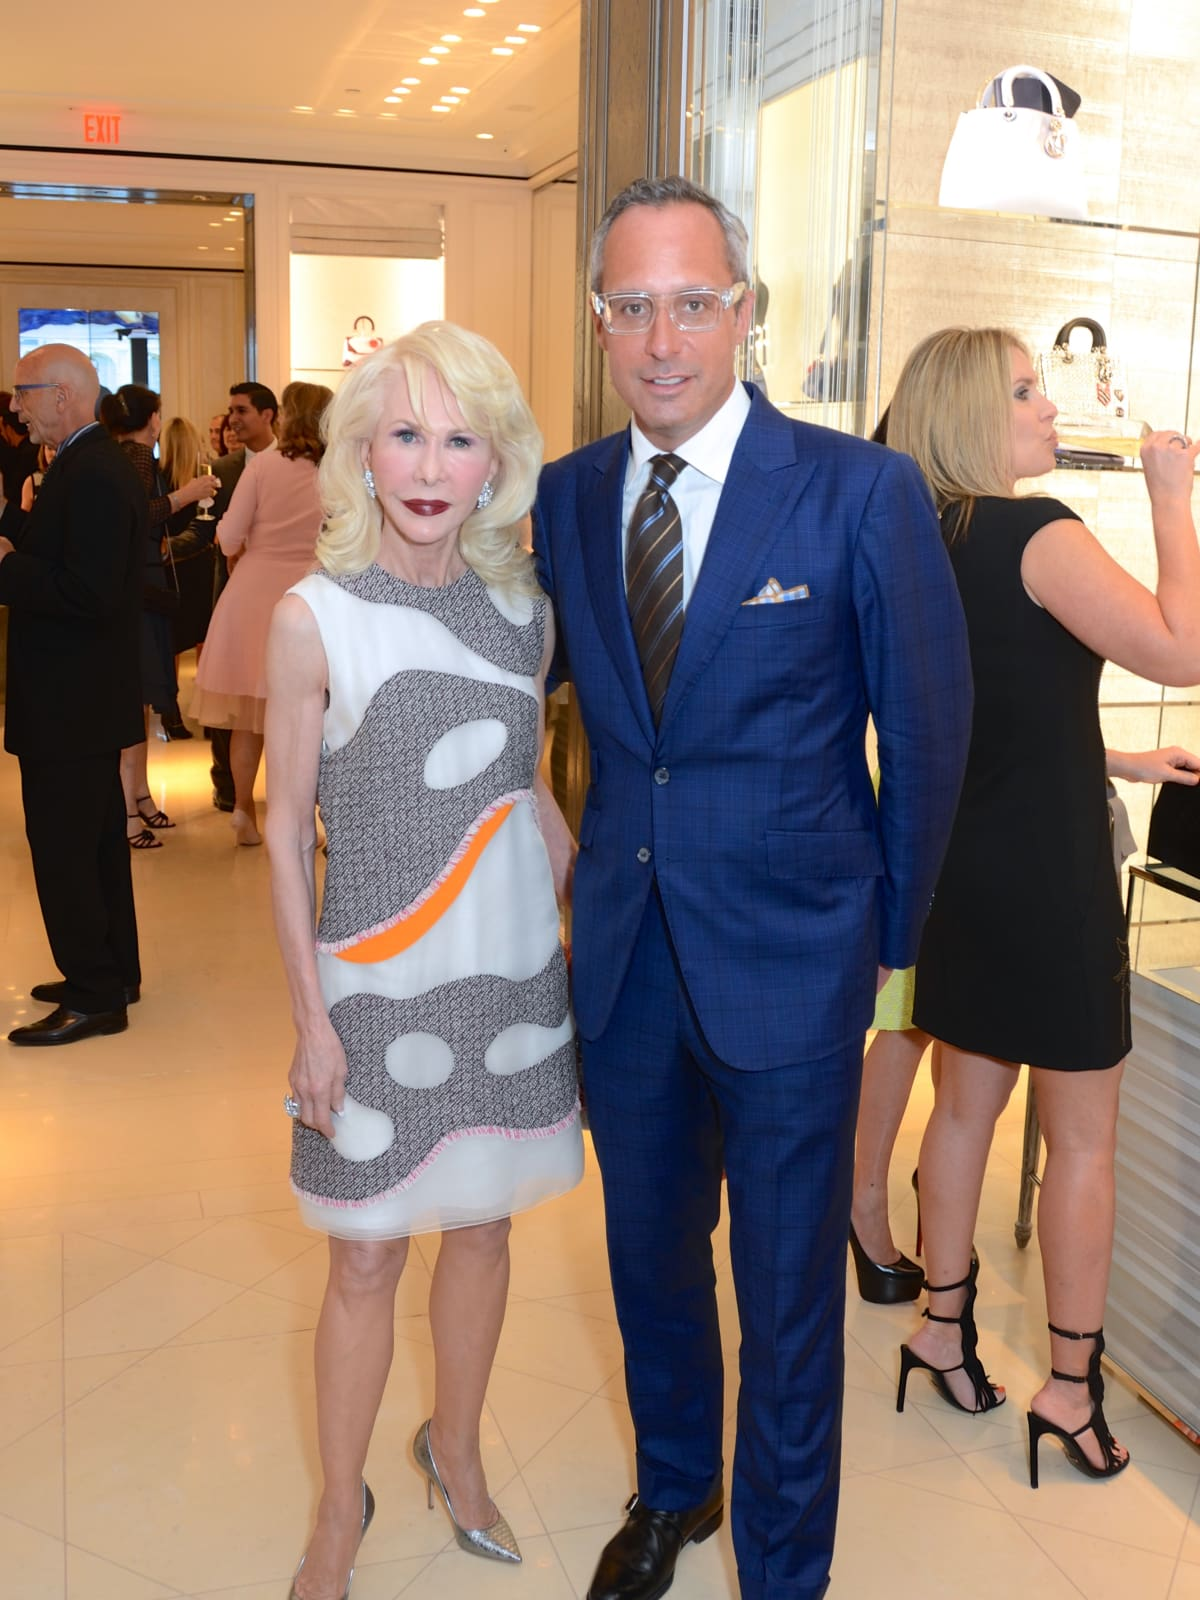 News, Shelby, Dior opening, Diane Lokey Farb, Mark Sullivan